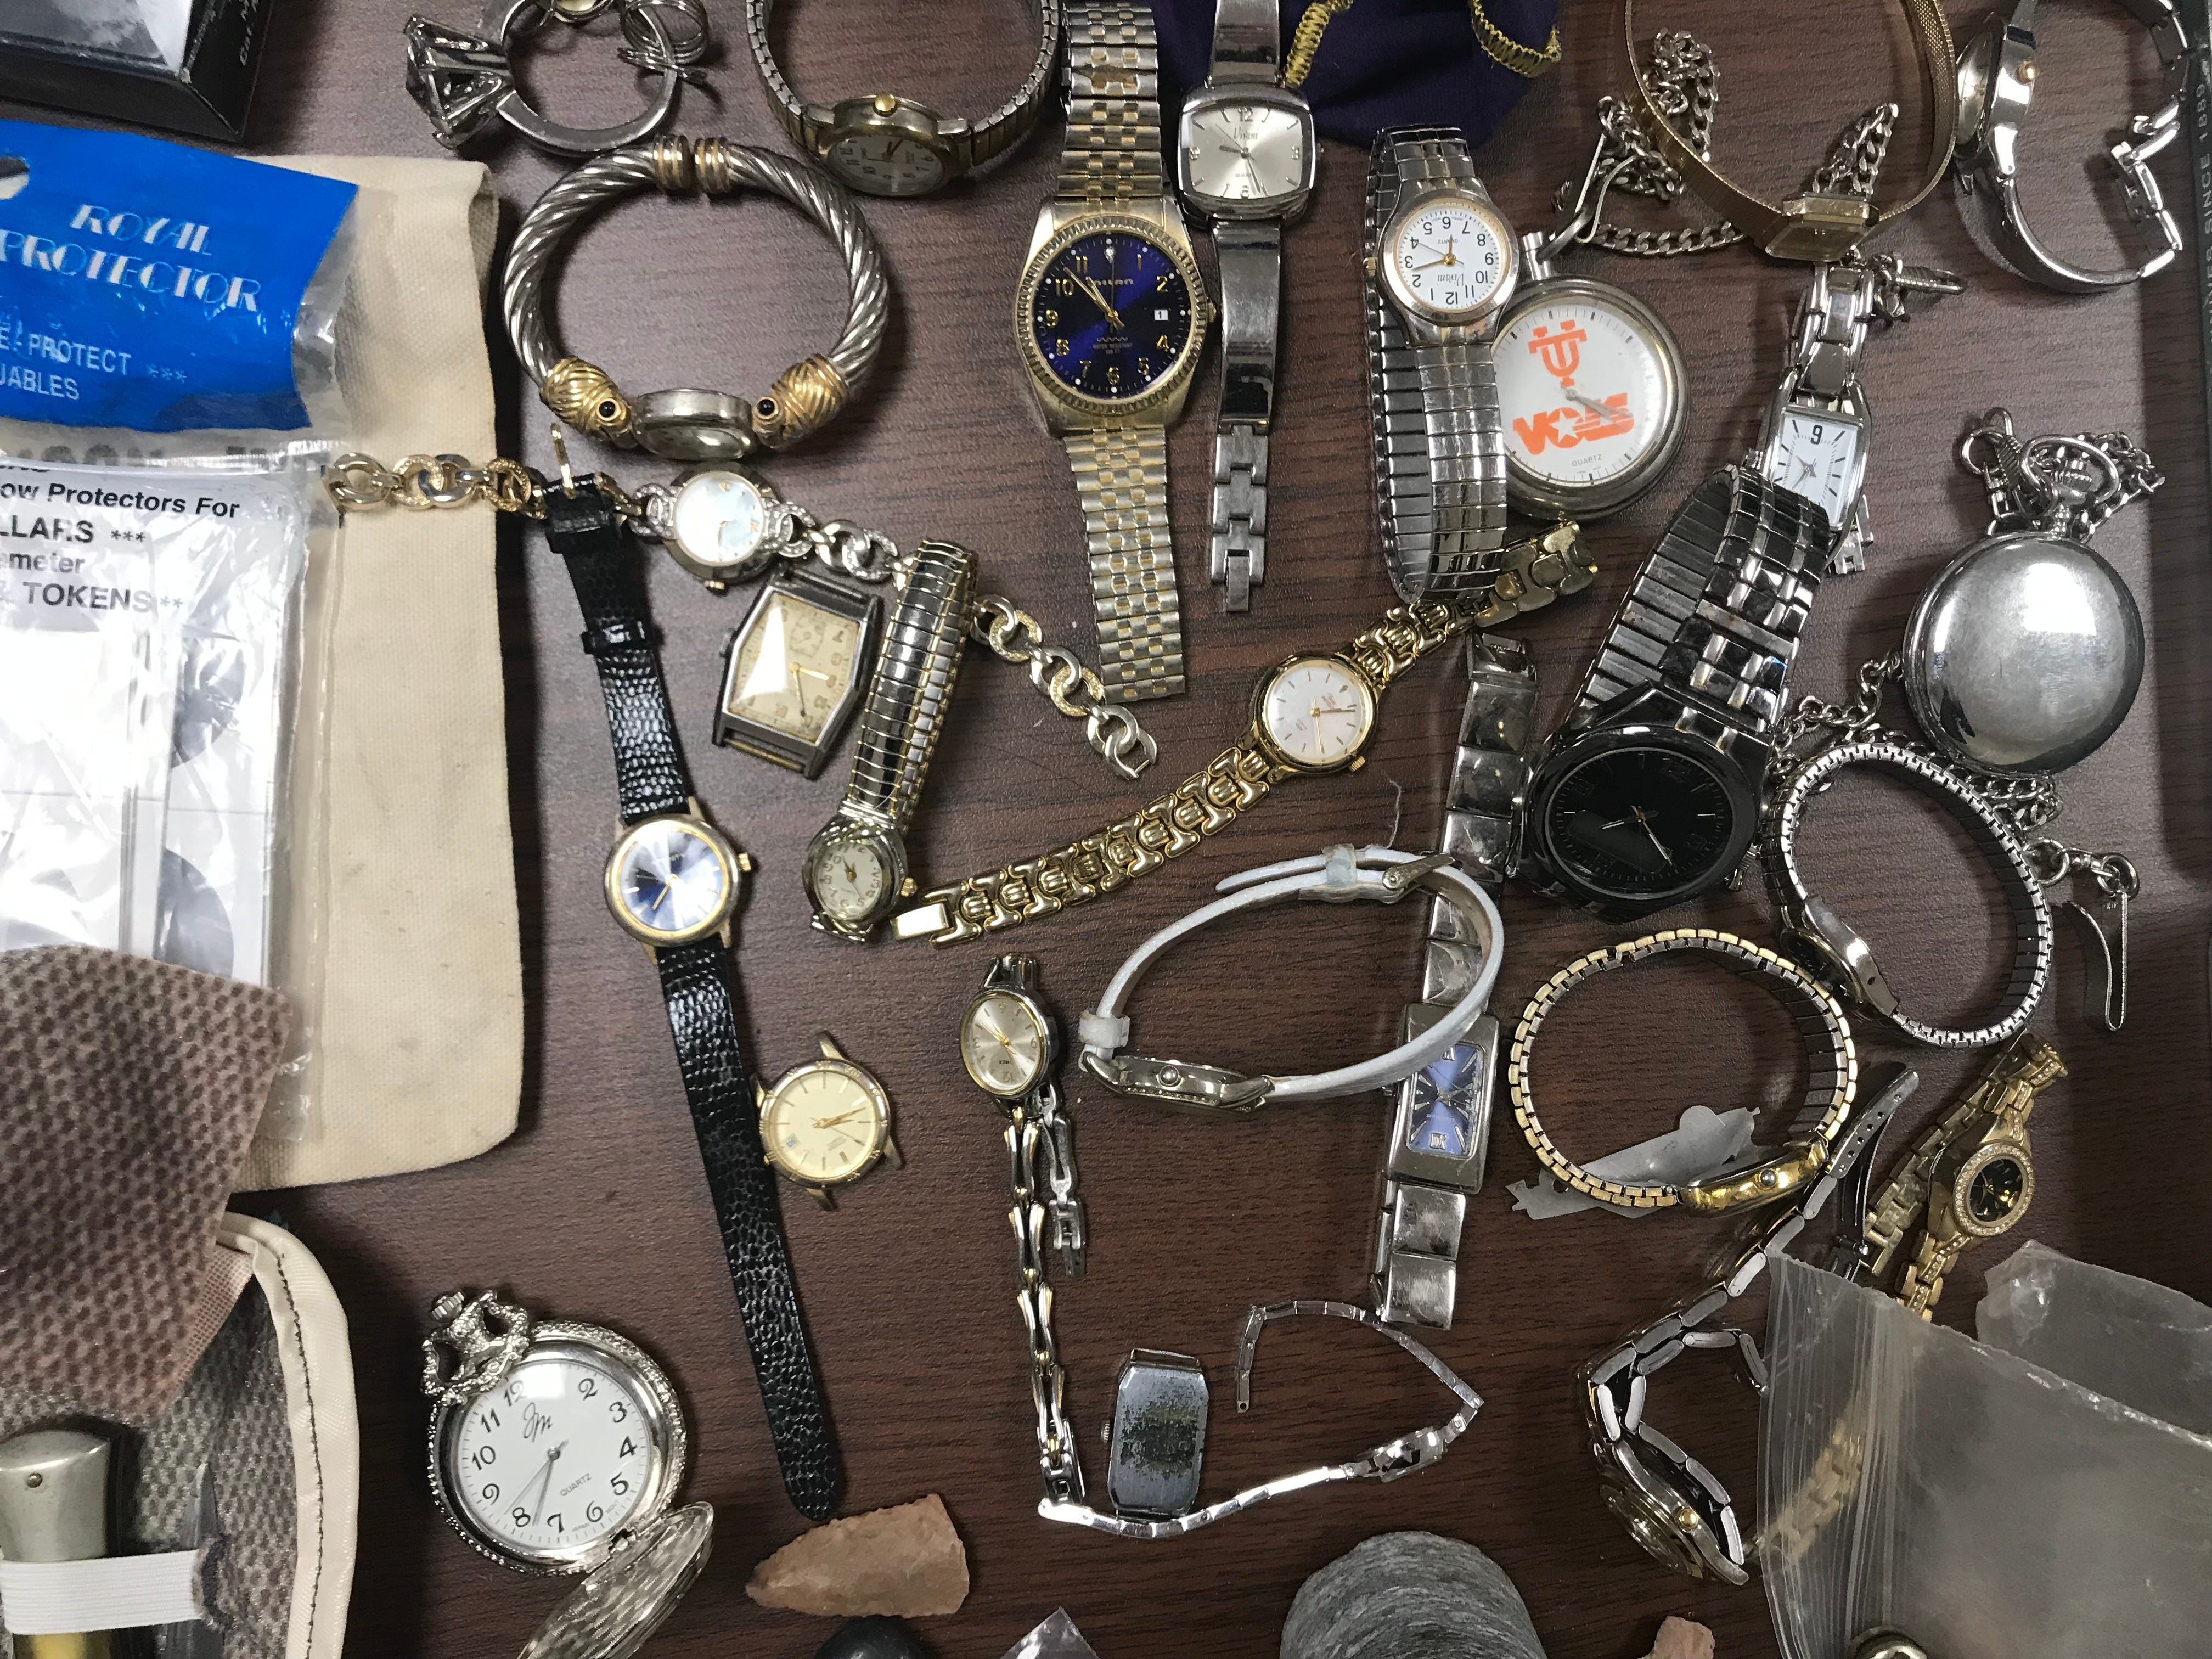 Antique watches were among hundreds of items Madison County Sheriff's Office recovered from a theft ring believed to be targeting grieving families and others throughout West Tennessee.